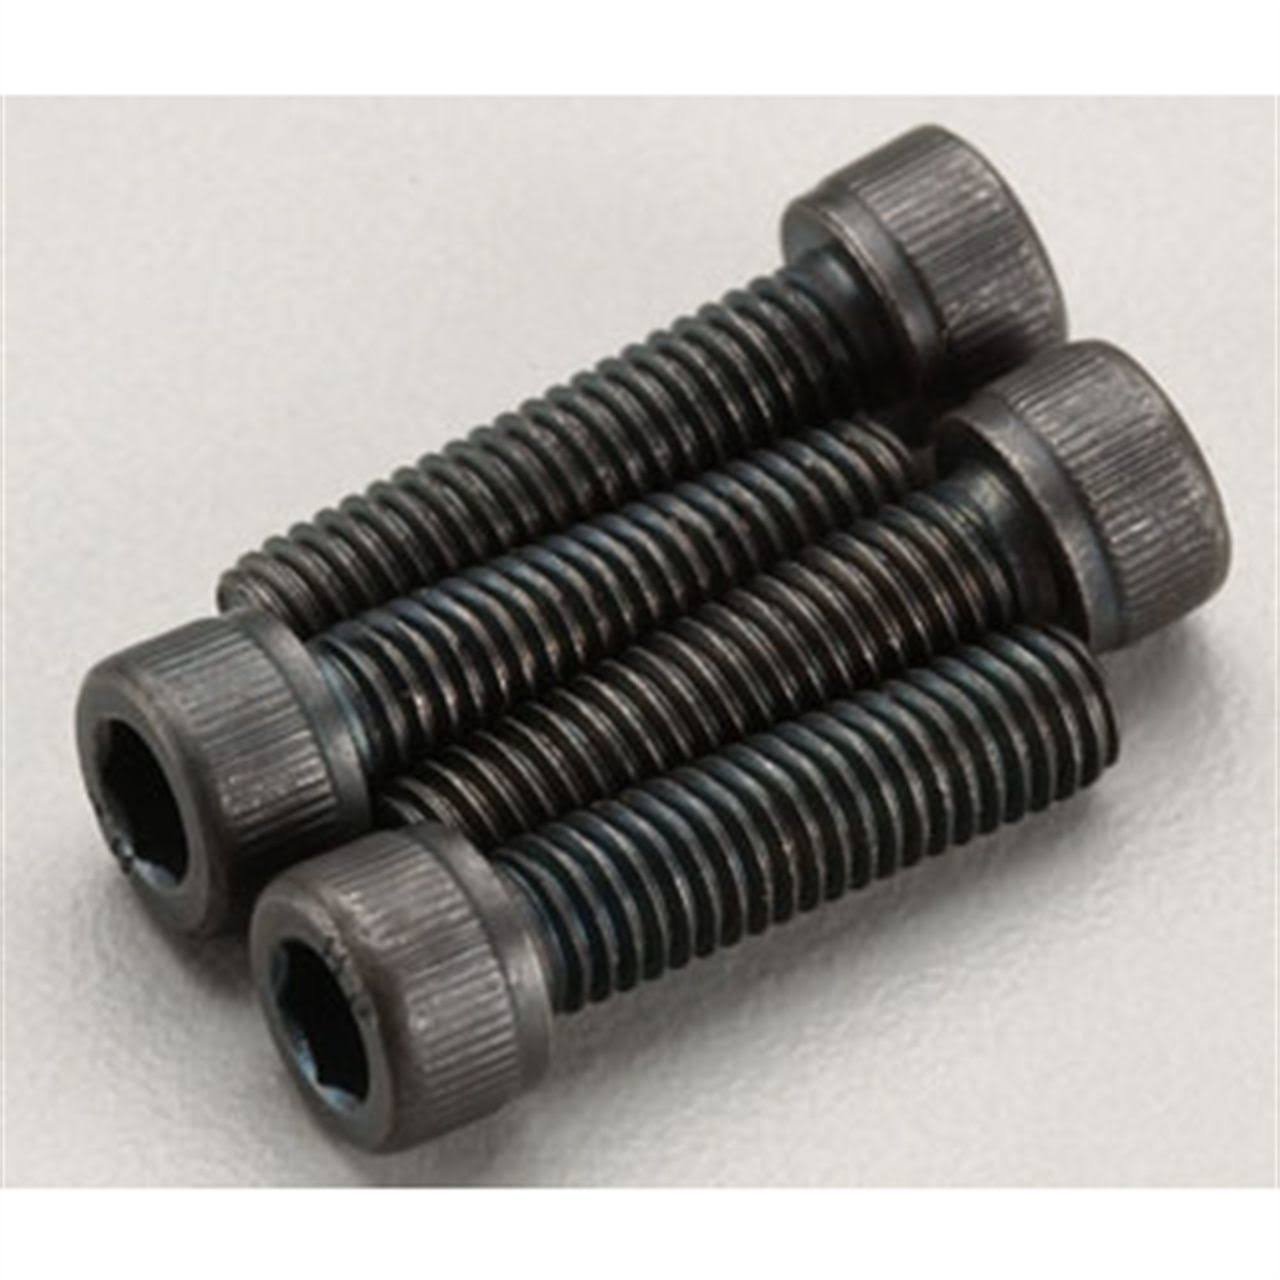 Dubro 10-32 x 3/4in Socket Head Cap Screws (4) 580